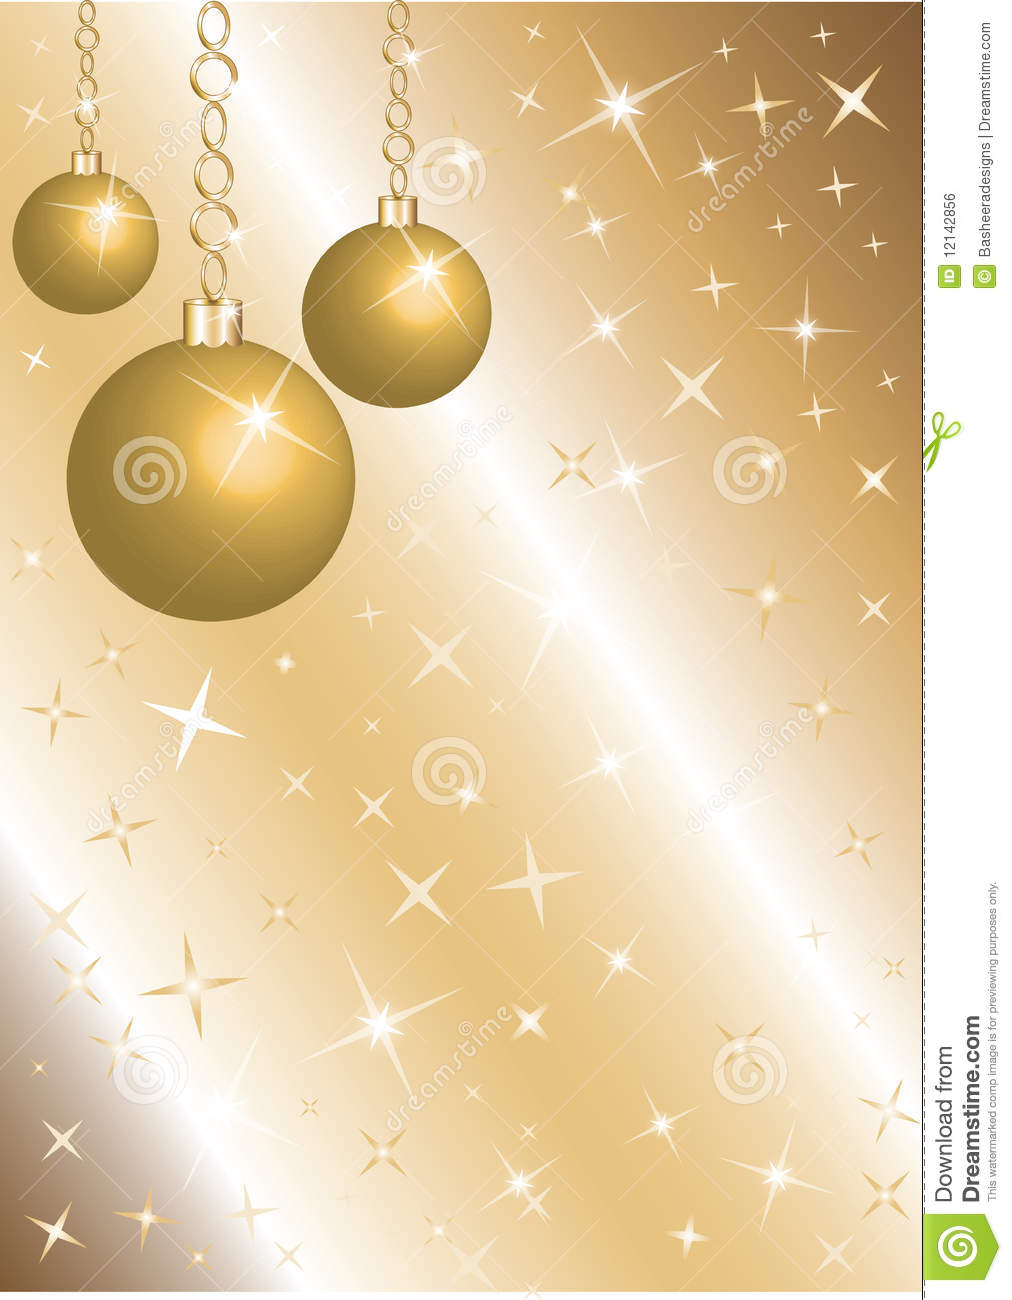 golden christmas background with - photo #23